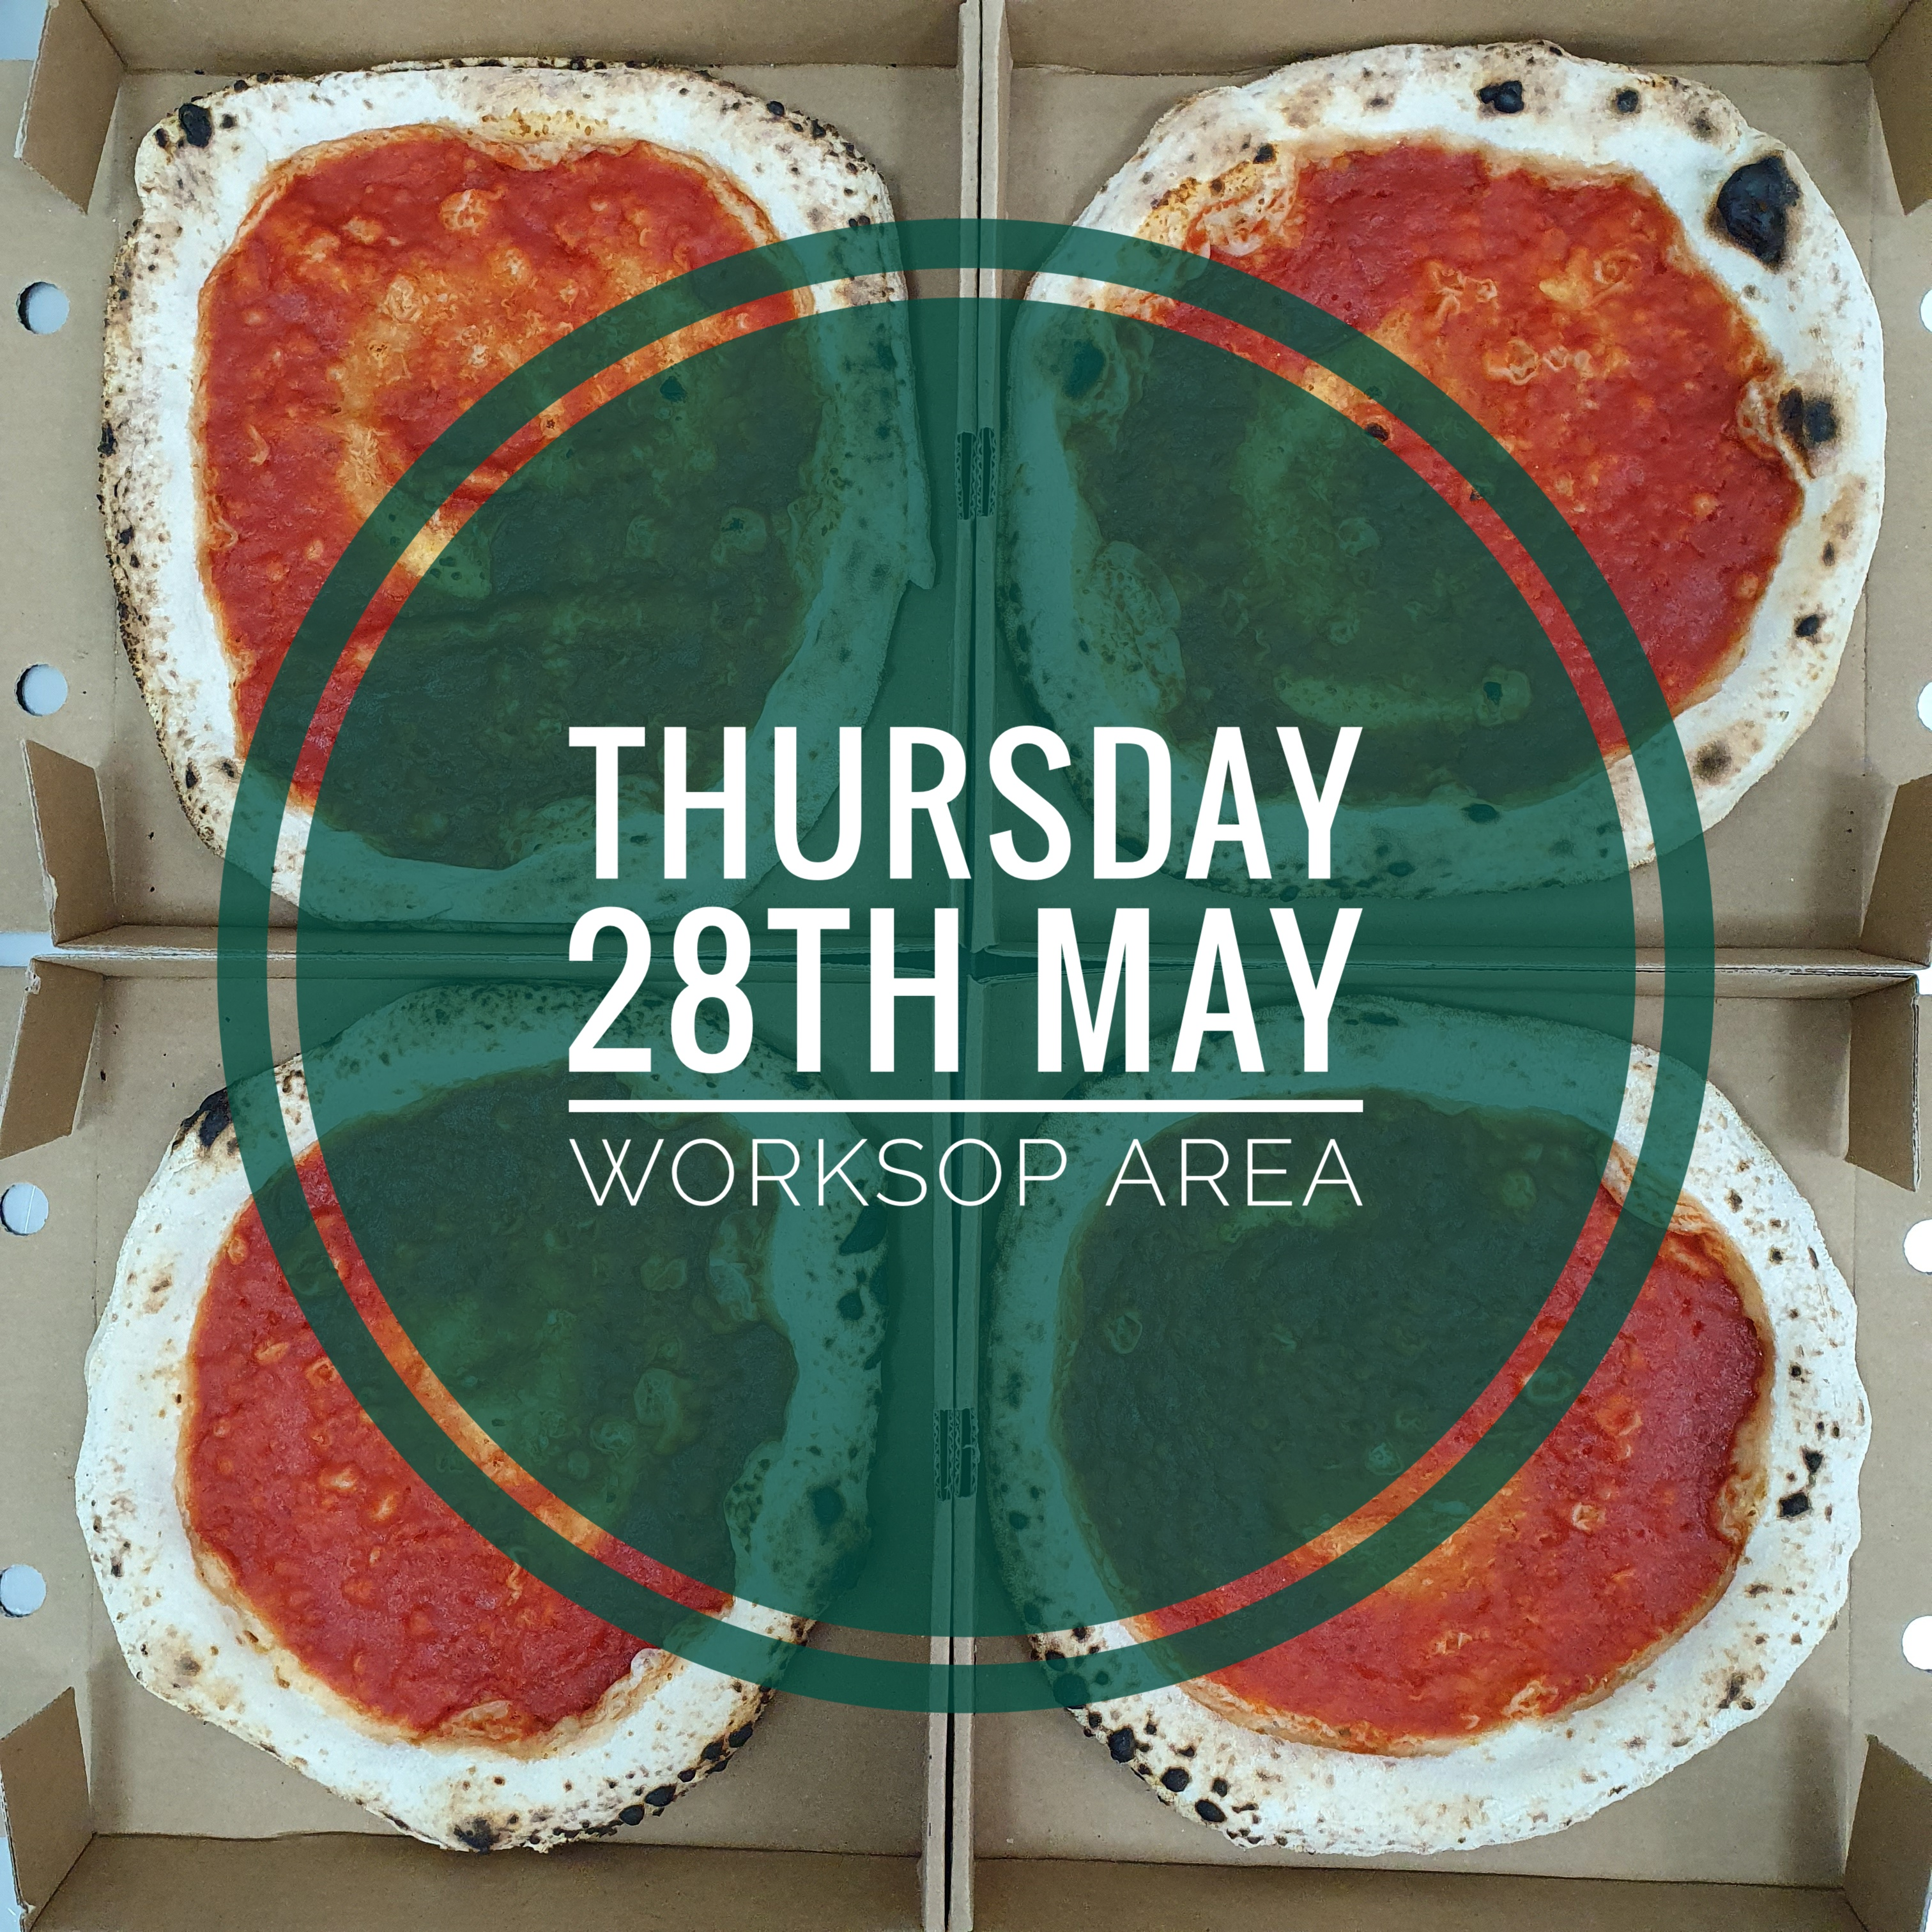 Sourdough Wood Fired Pizza Kit (THURSDAY 28th MAY WORKSOP AREA)